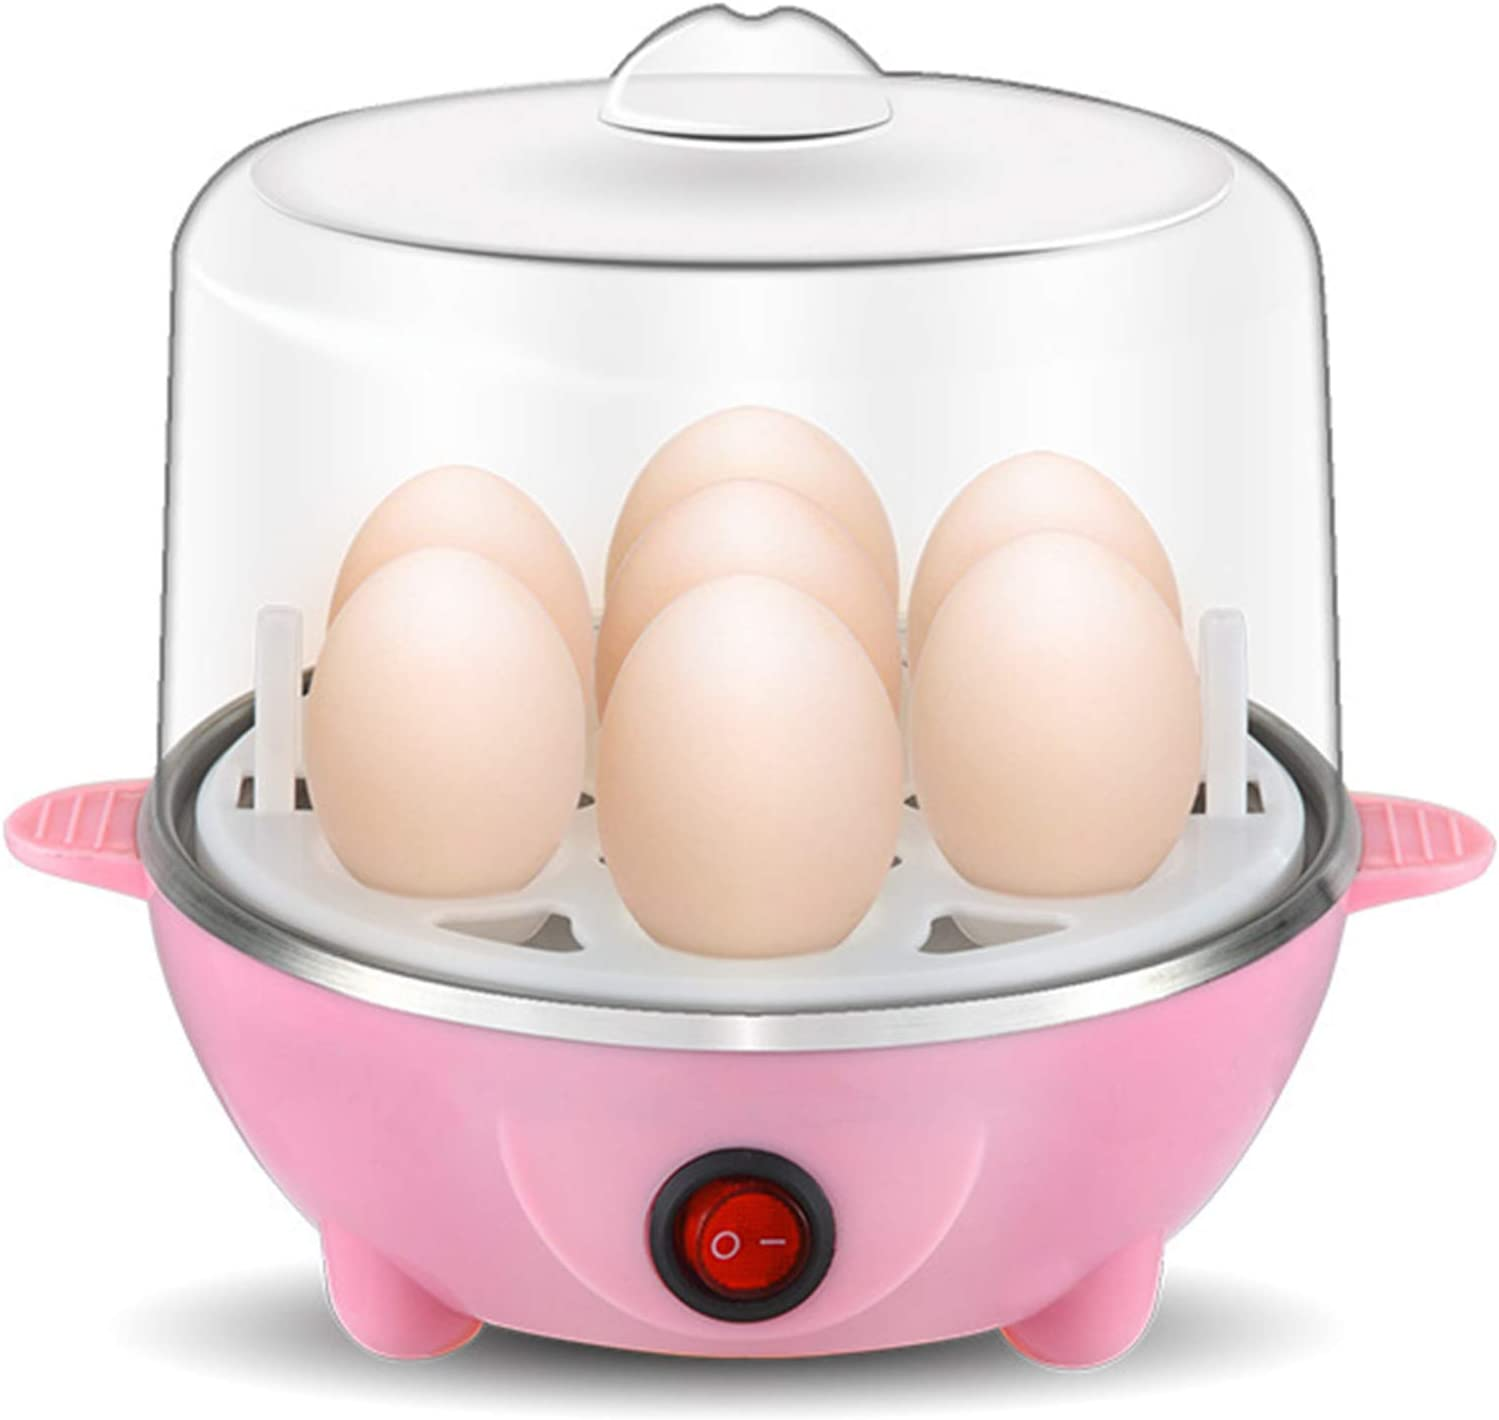 XIONGGG Egg Cooker Electric Egg Boiler, Soft, Medium Or Hard Boil, 7 Egg Capacity, Automatic Shut Off, Measuring Cup Included